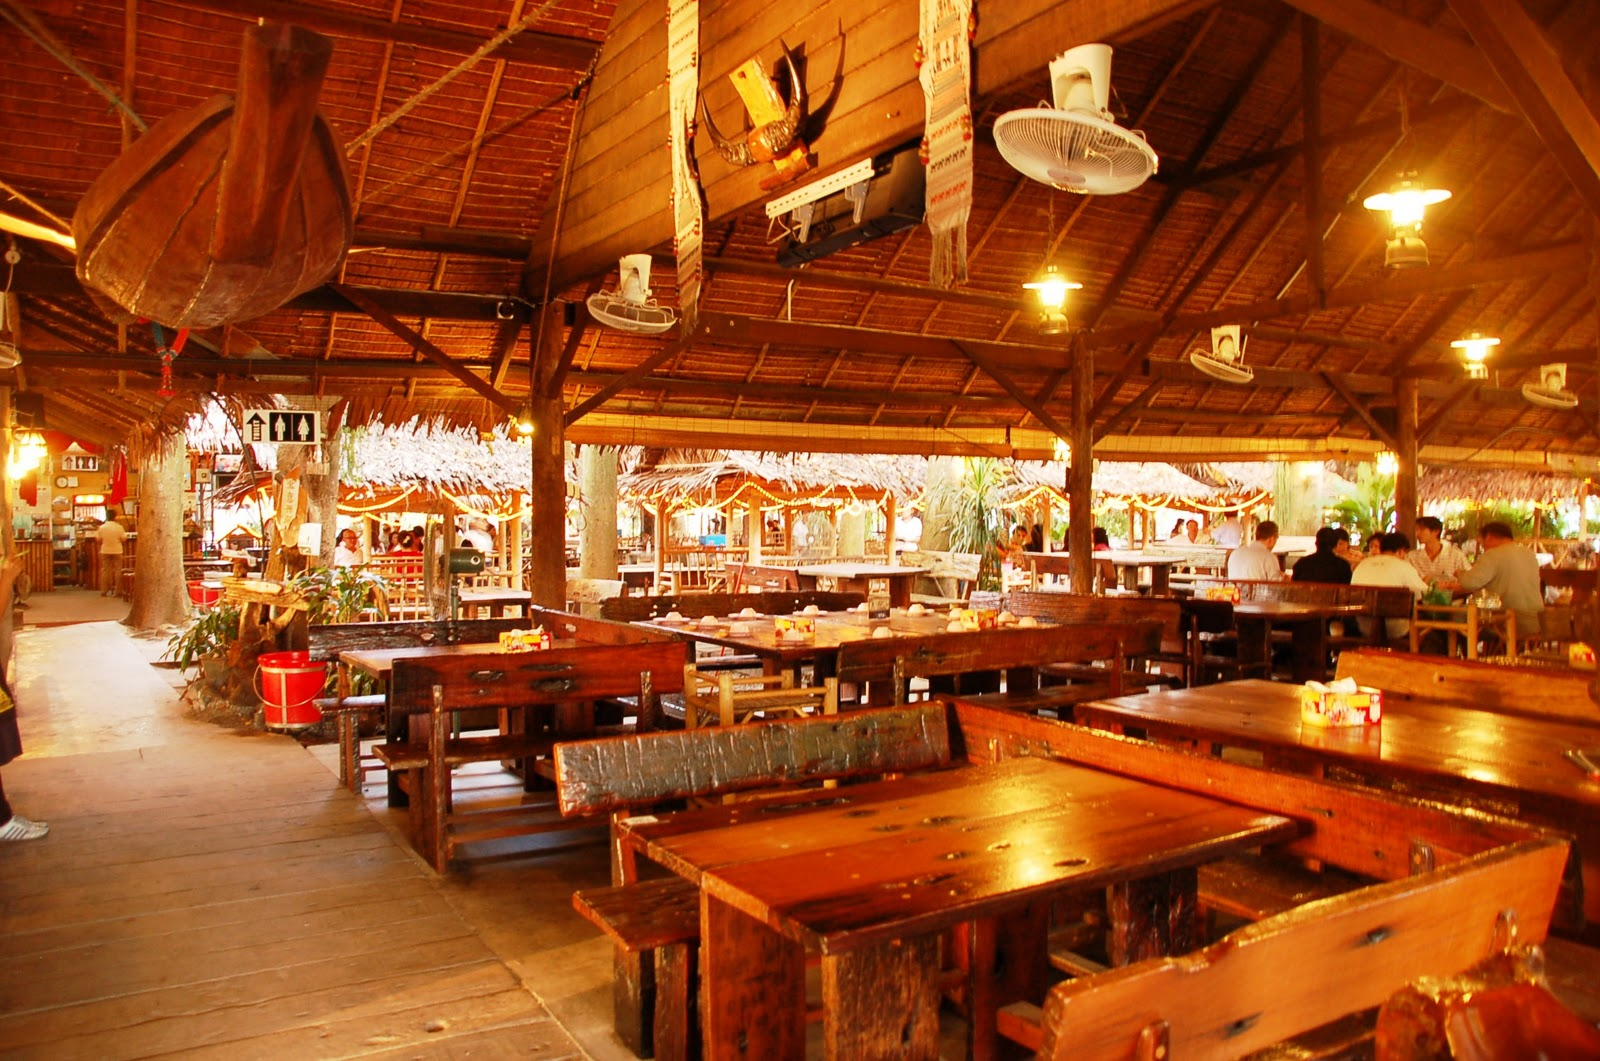 Main Dining Hall Close To The Entrance